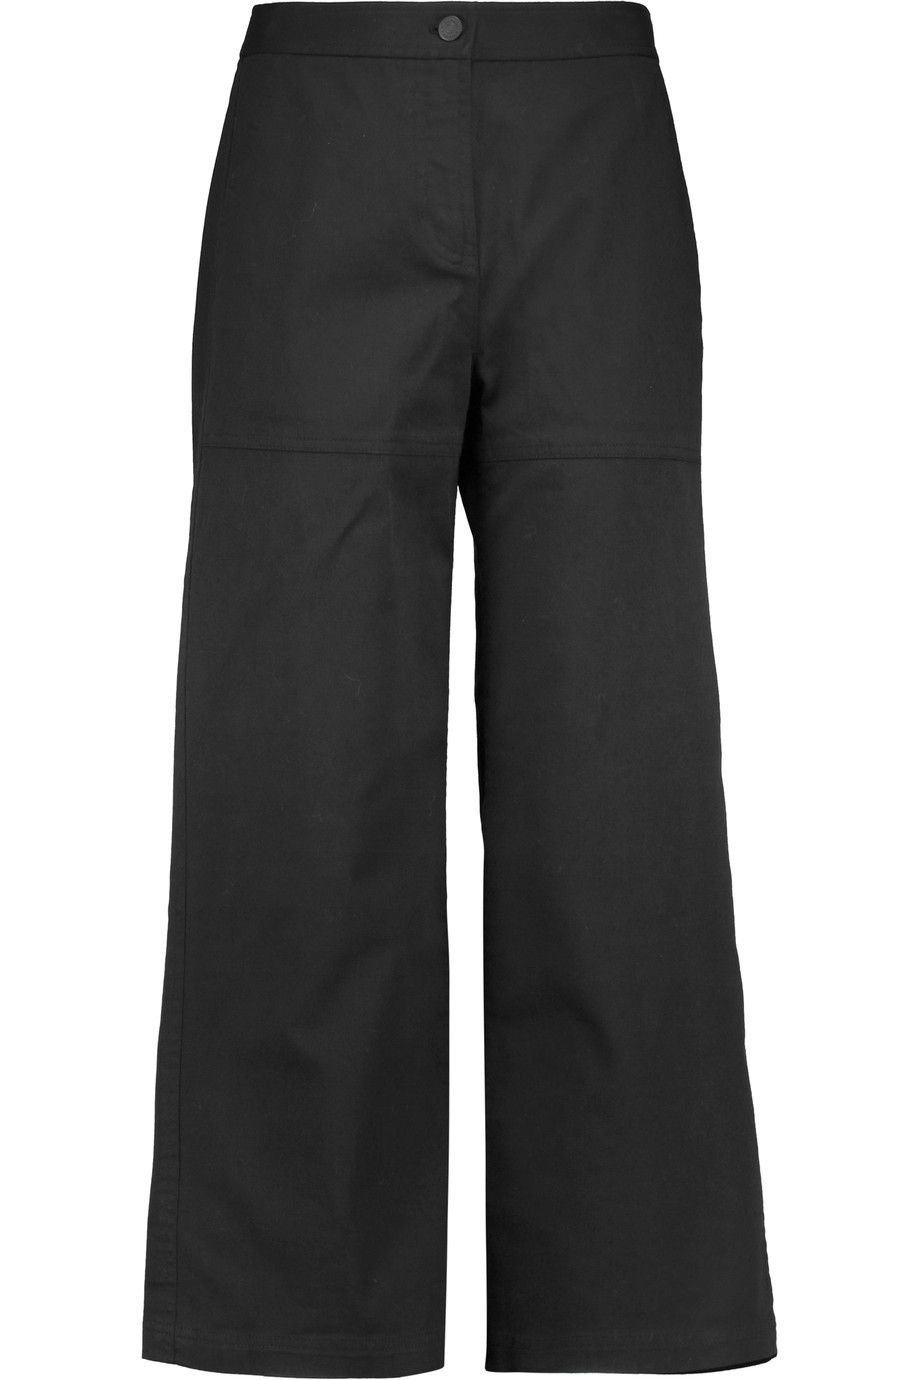 T BY ALEXANDER WANG Cropped cotton-blend wide-leg pants. #tbyalexanderwang #cloth #pants